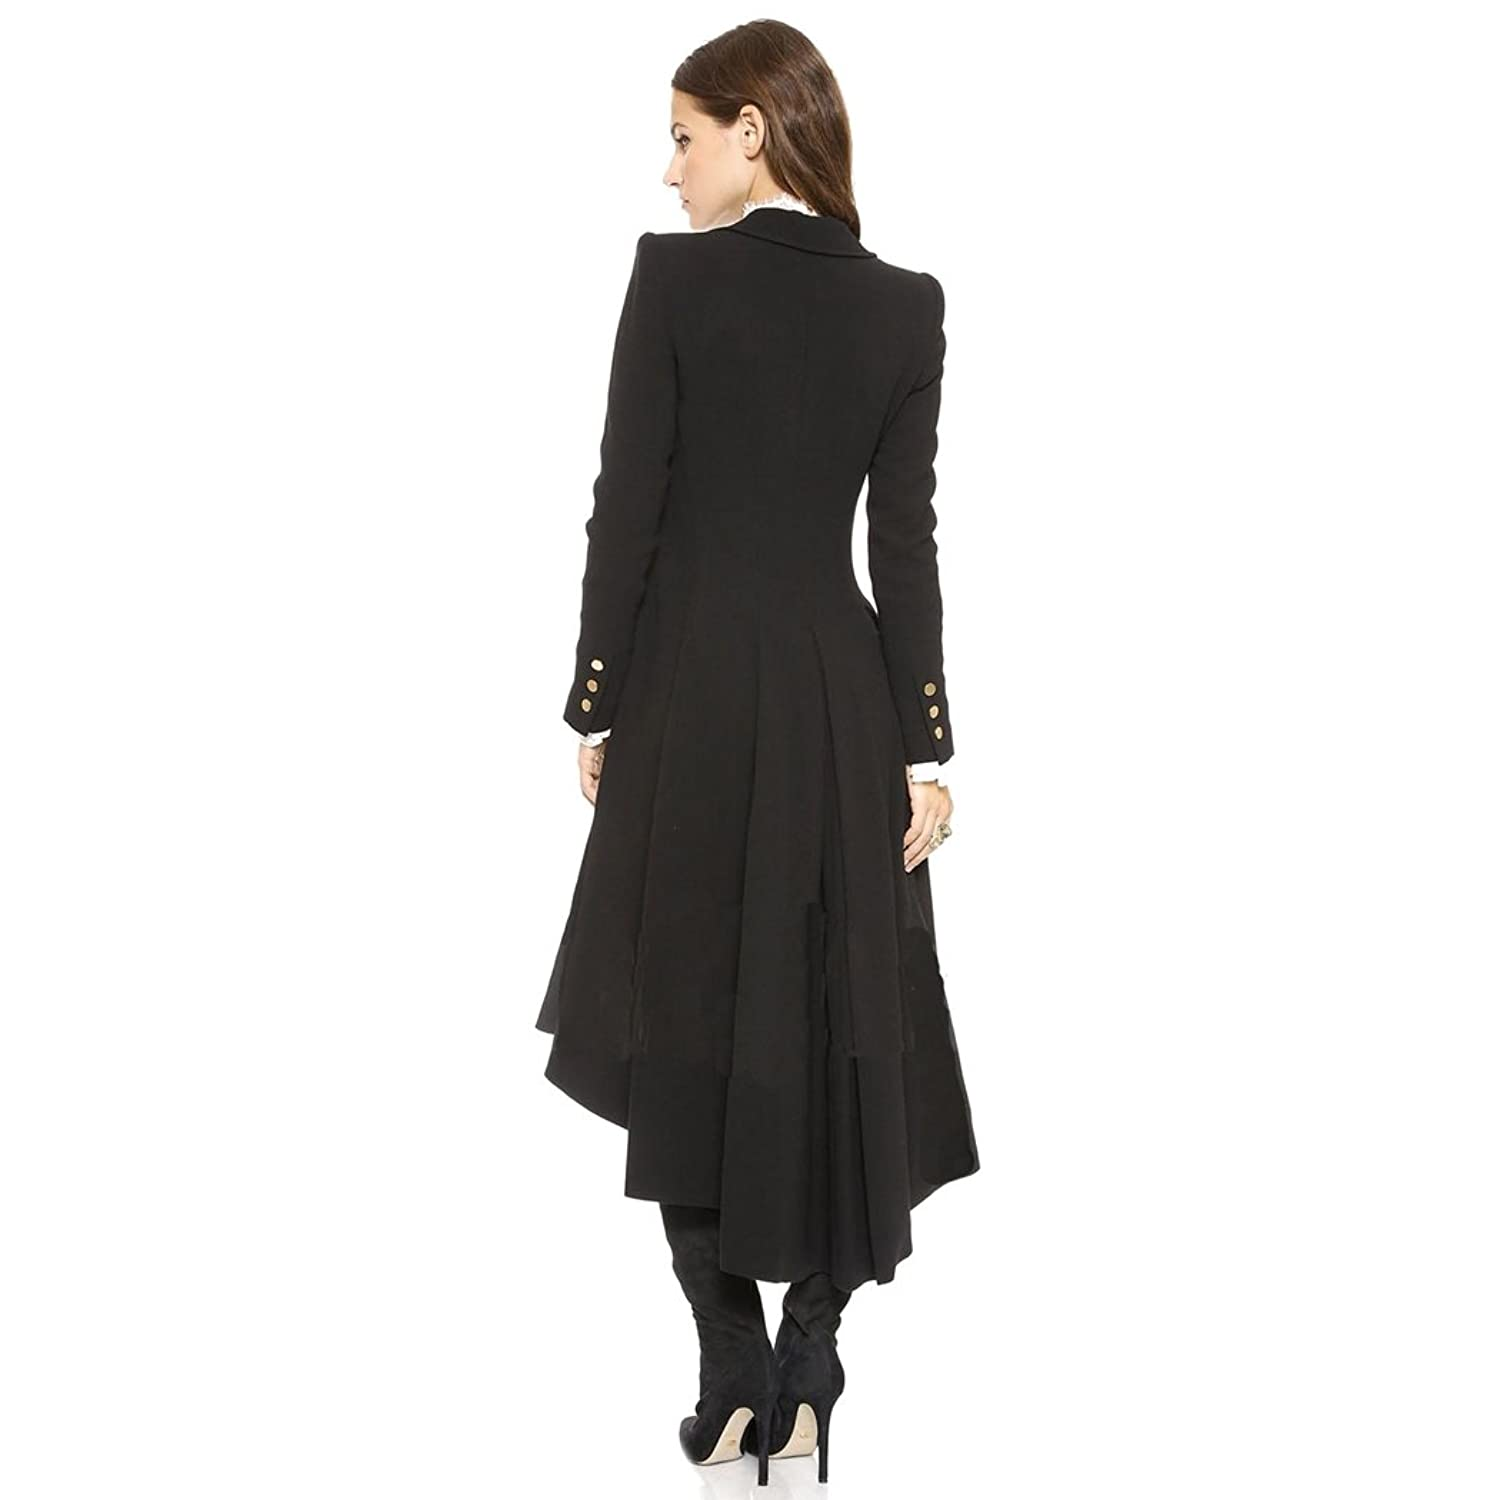 Vintage Coats & Jackets | Retro Coats and Jackets City In Left Womens Slim Long Dovetail Turn-Down Collar Trench Coat Gothic Clothing $57.50 AT vintagedancer.com